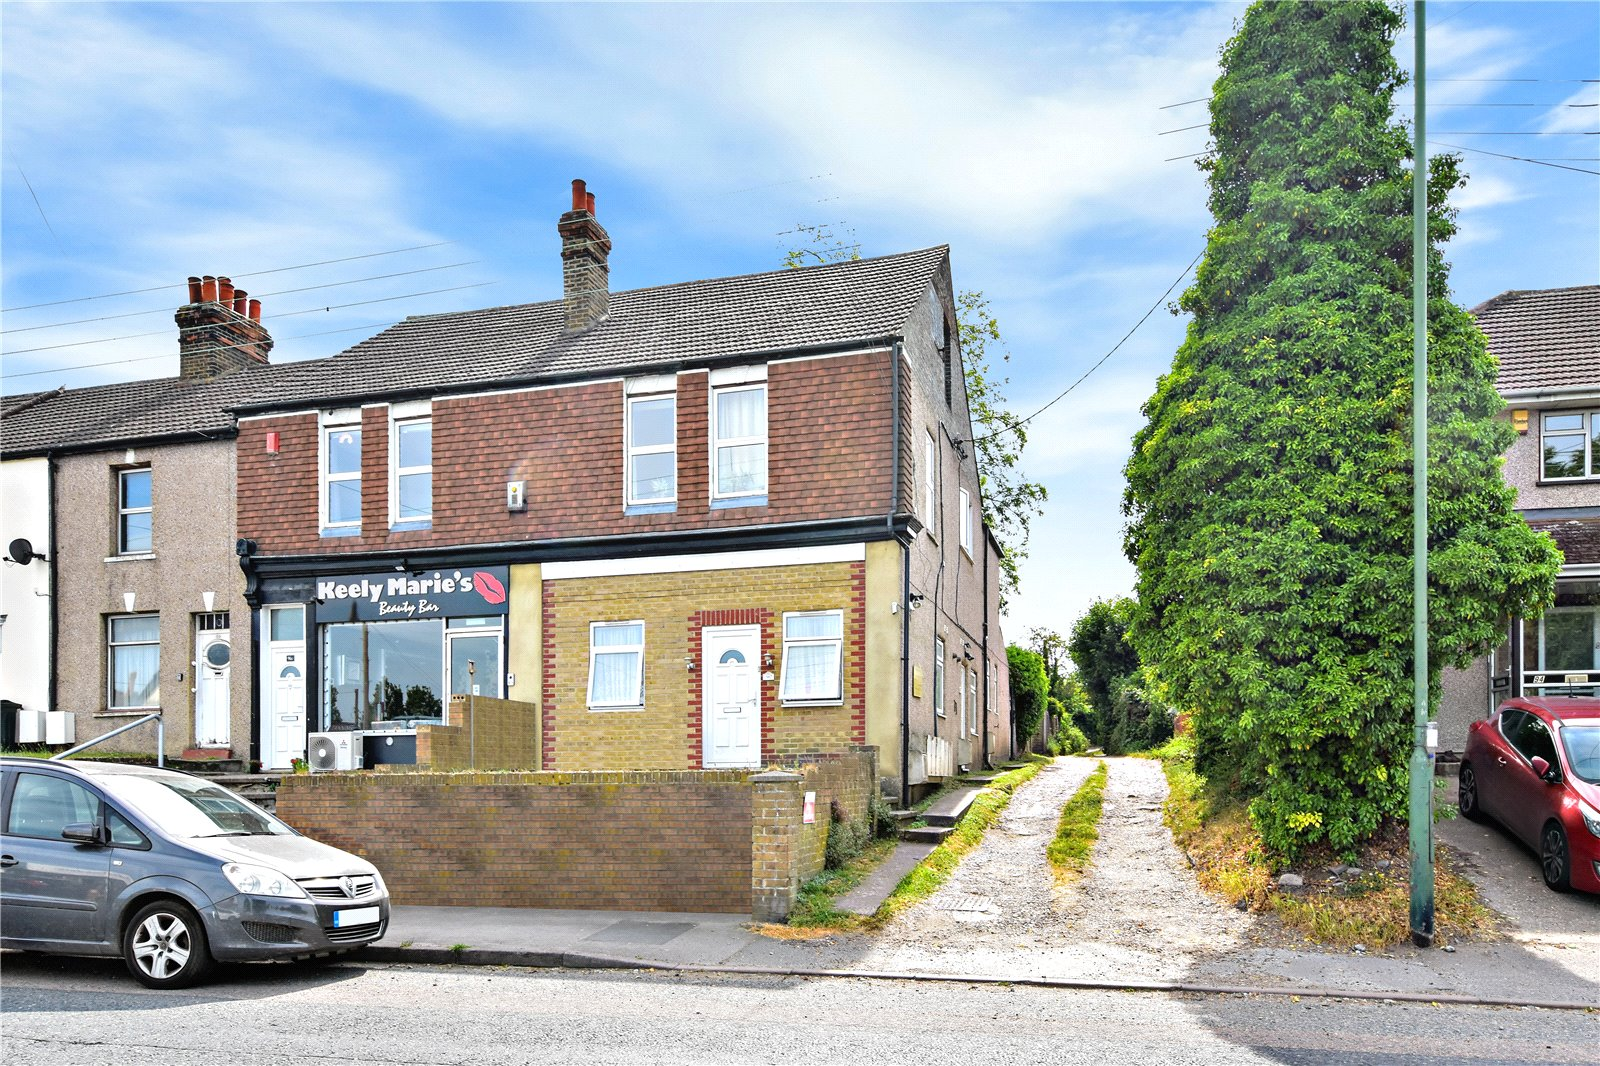 Main Road, Sutton At Hone, Dartford, Kent, DA4